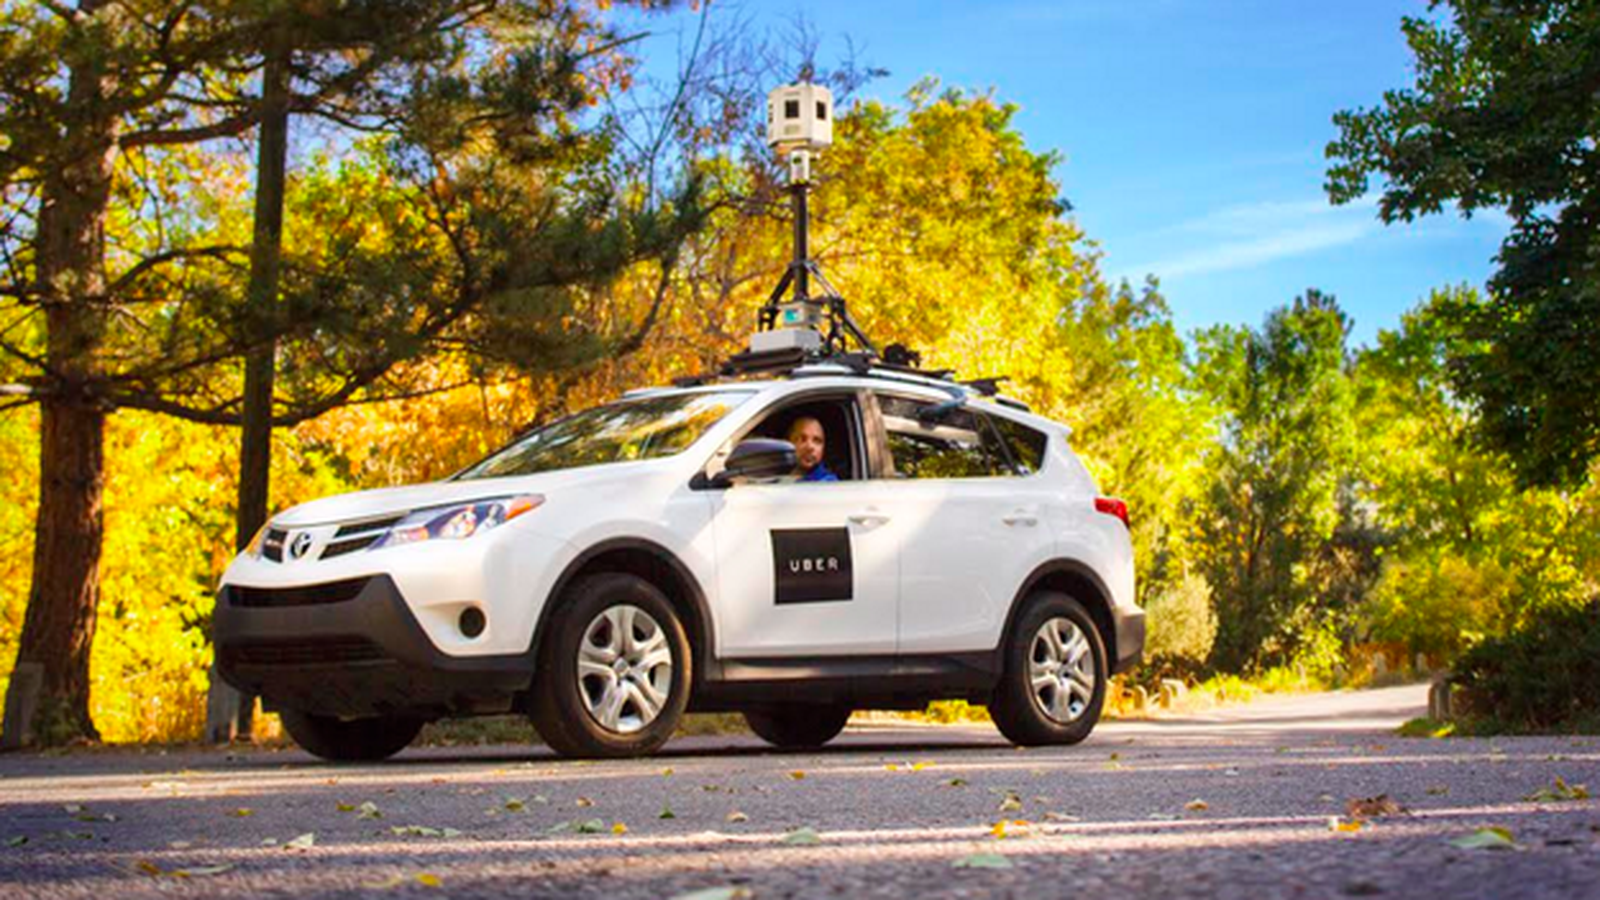 After acquiring Microsoft's mapping technology and roughly 100 Bing engineers earlier this year, Uber has dispatched its own fleet of crewed vehicles in an attempt to improve upon its own maps back...